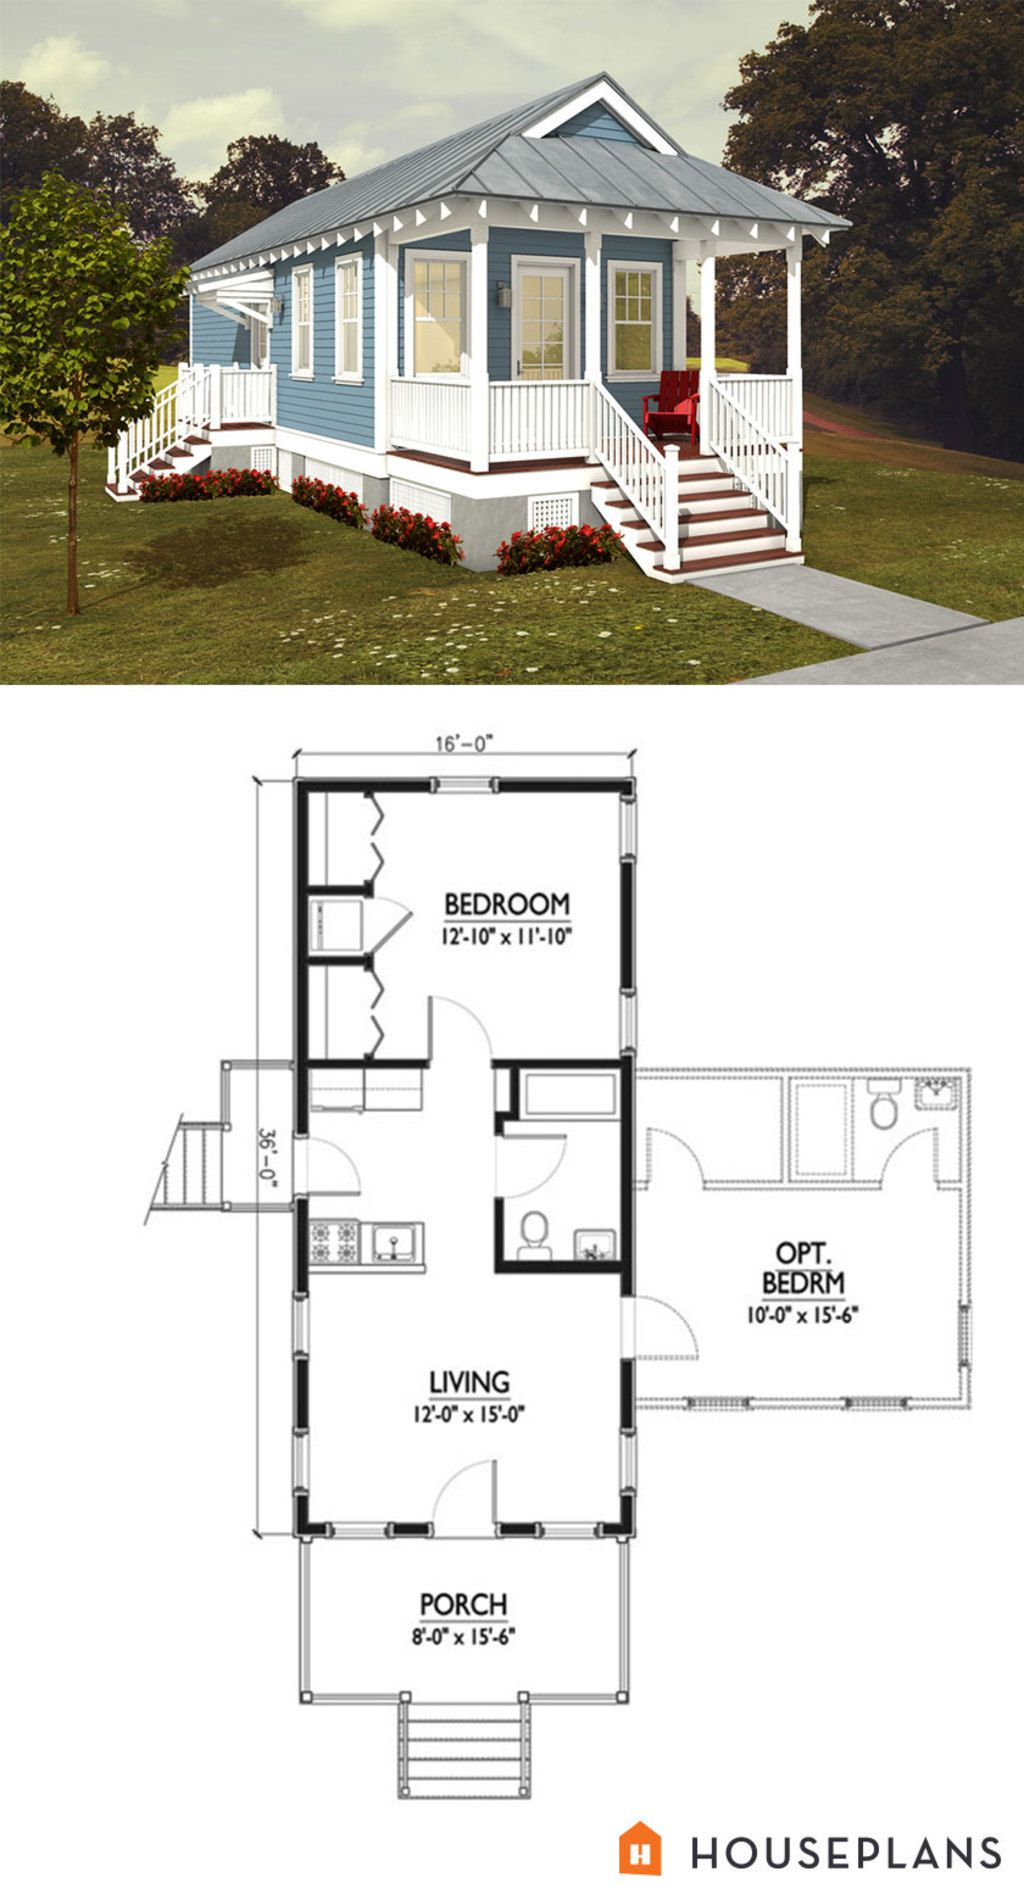 Cottage Style House Plan 1 Beds 1 Baths 576 Sq Ft Plan 514 6 Cottage Style House Plans Tiny House Floor Plans Cottage House Plans